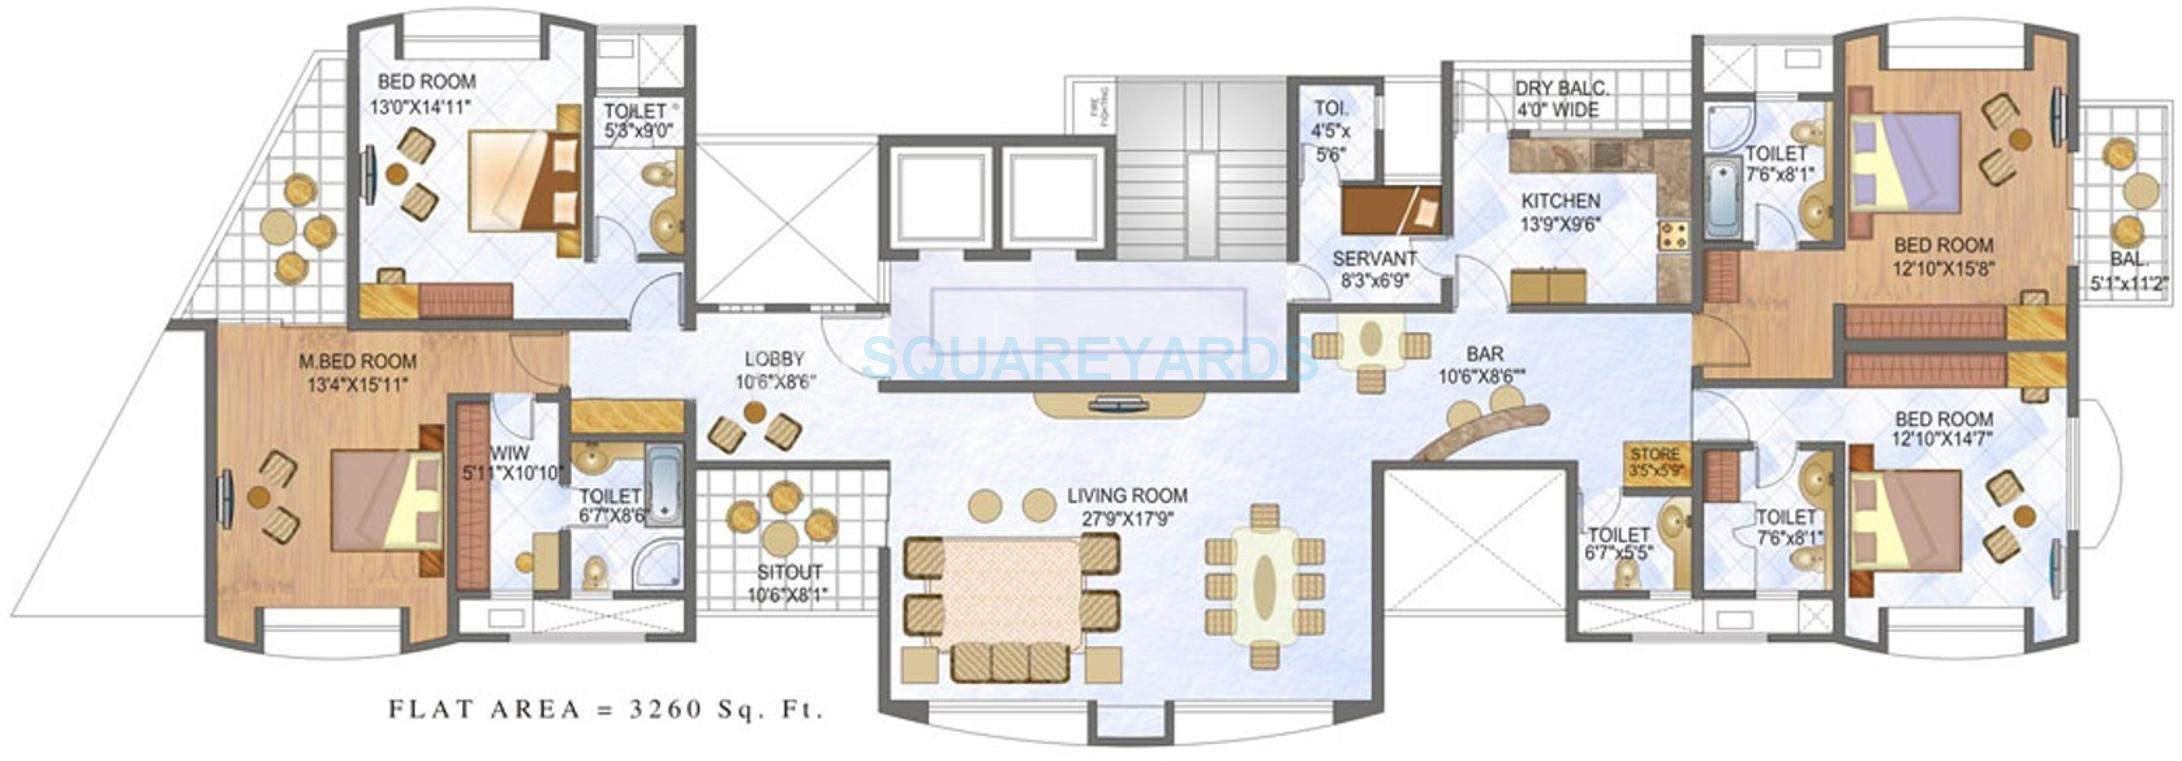 clover olympus apartment 4bhk 3260sqft 11756